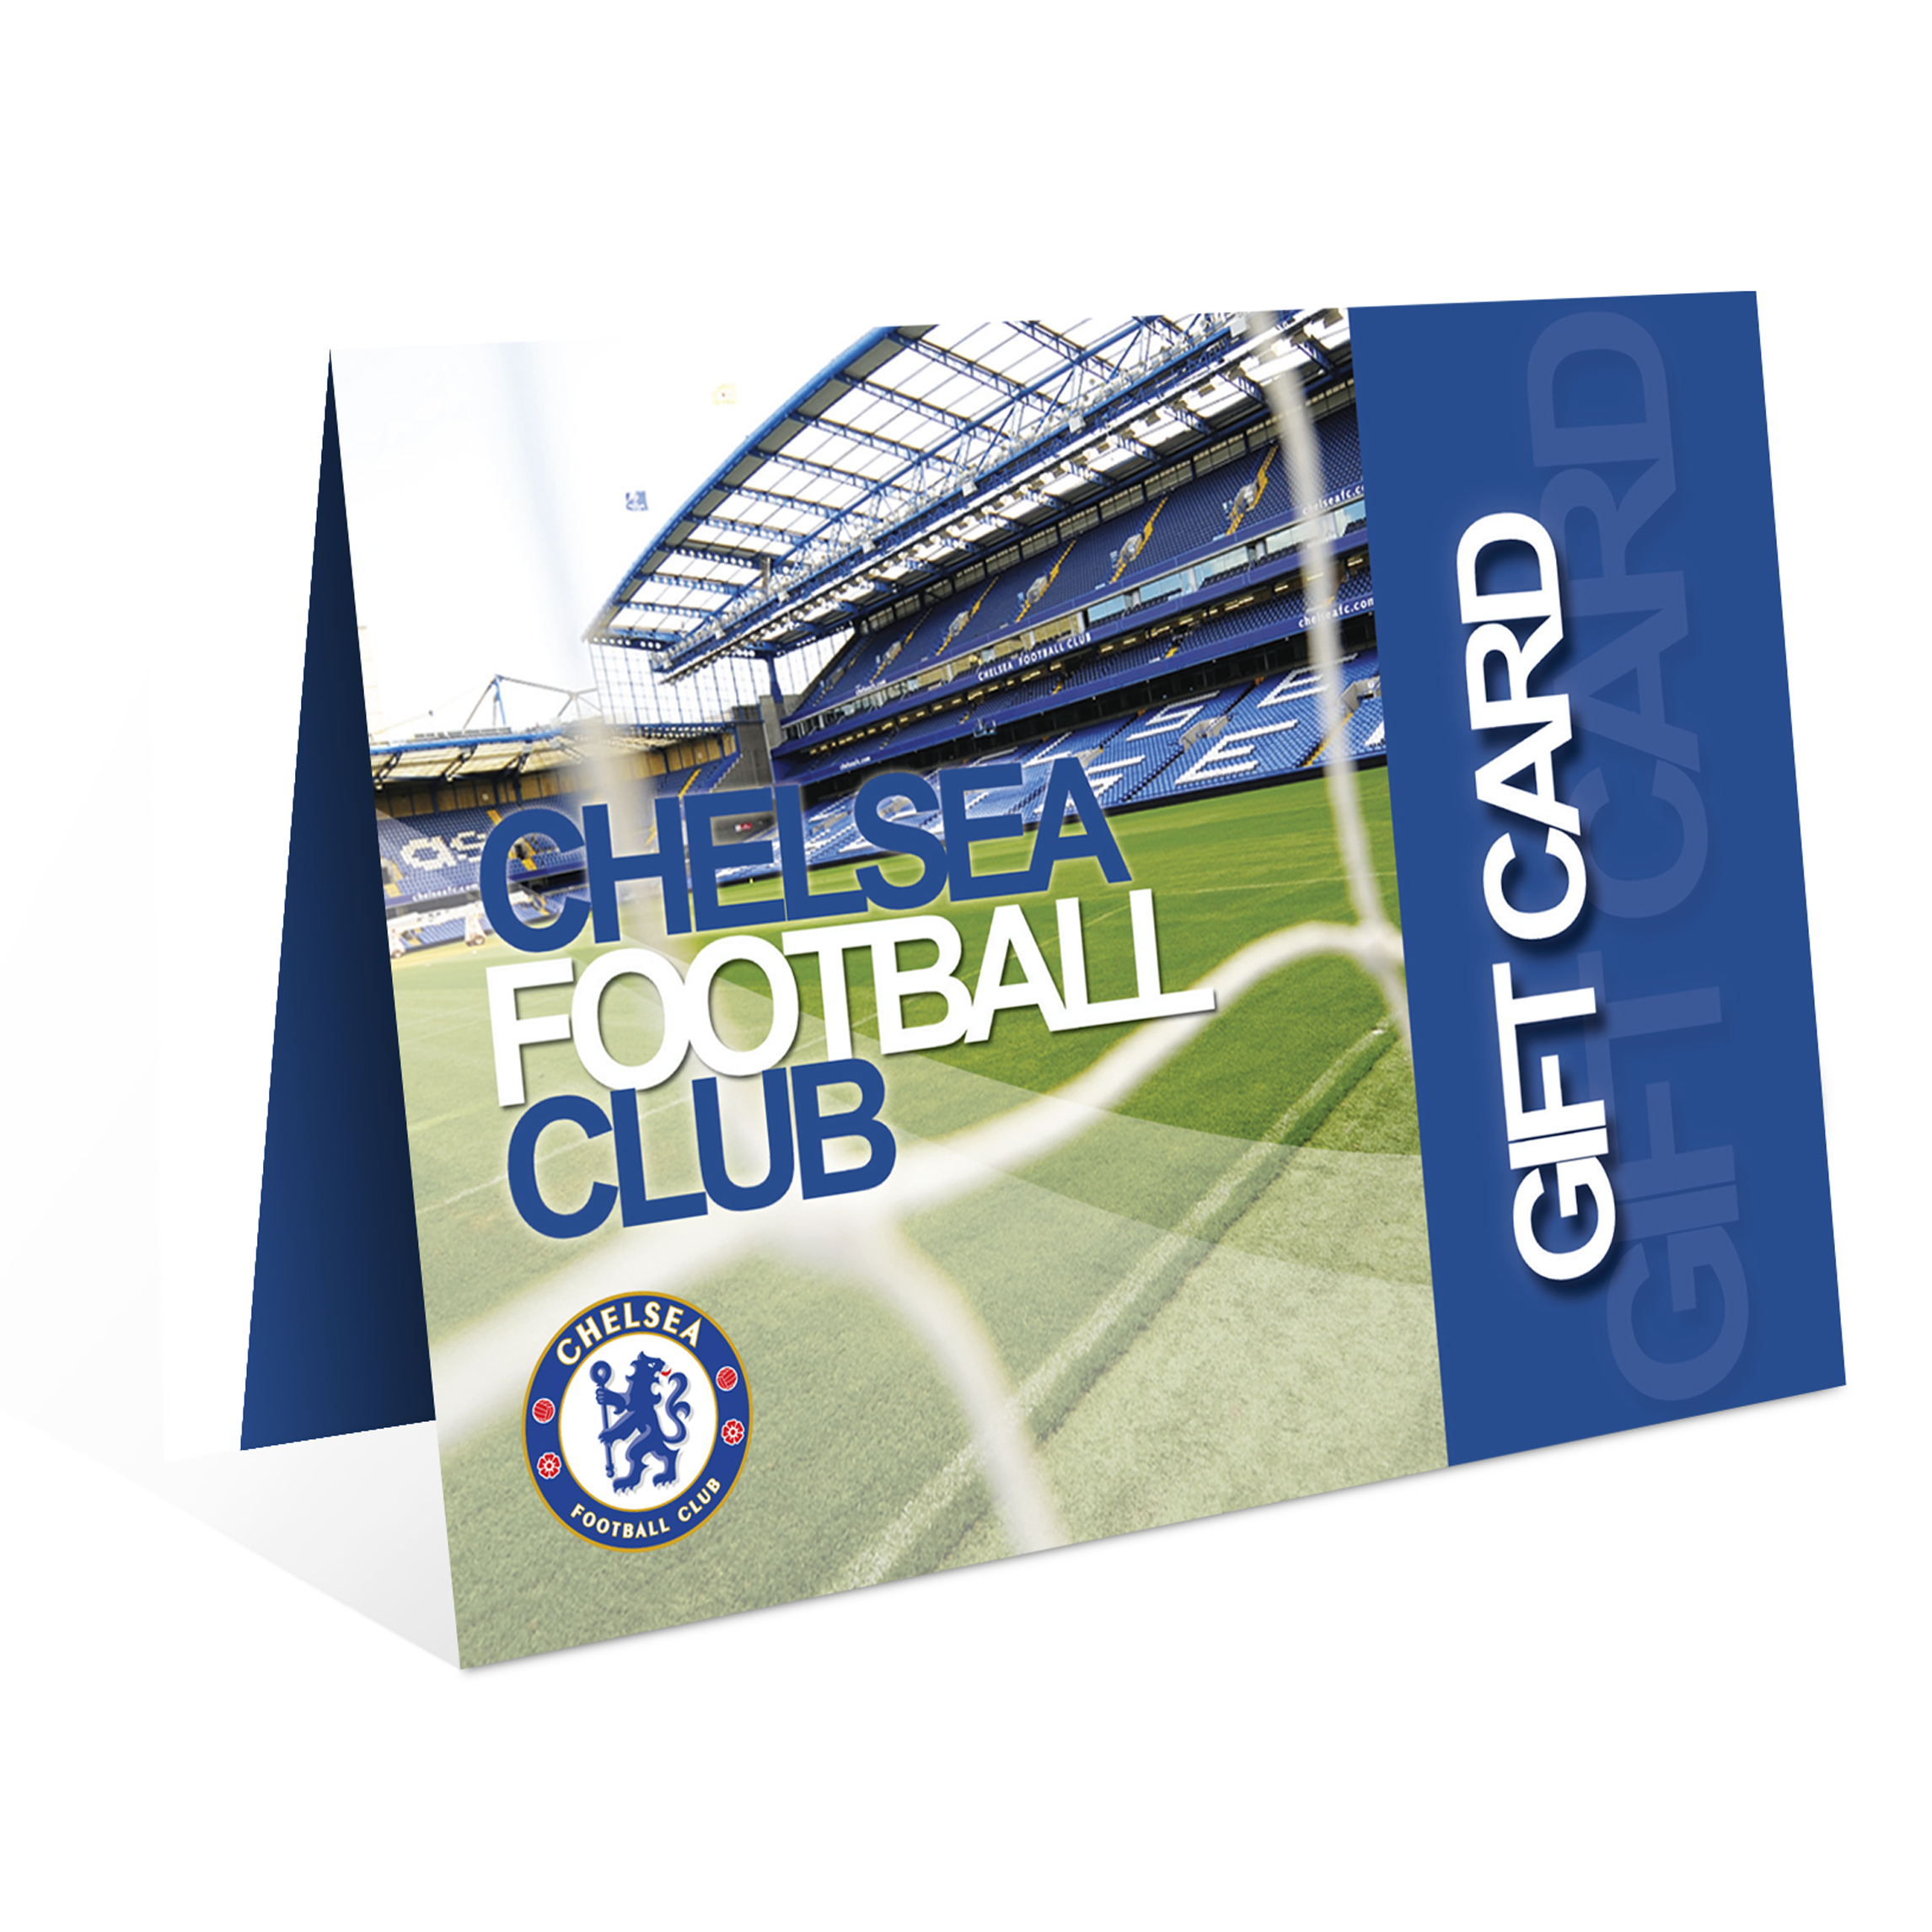 Chelsea Football Club Gift Card - Pitch - Value £25